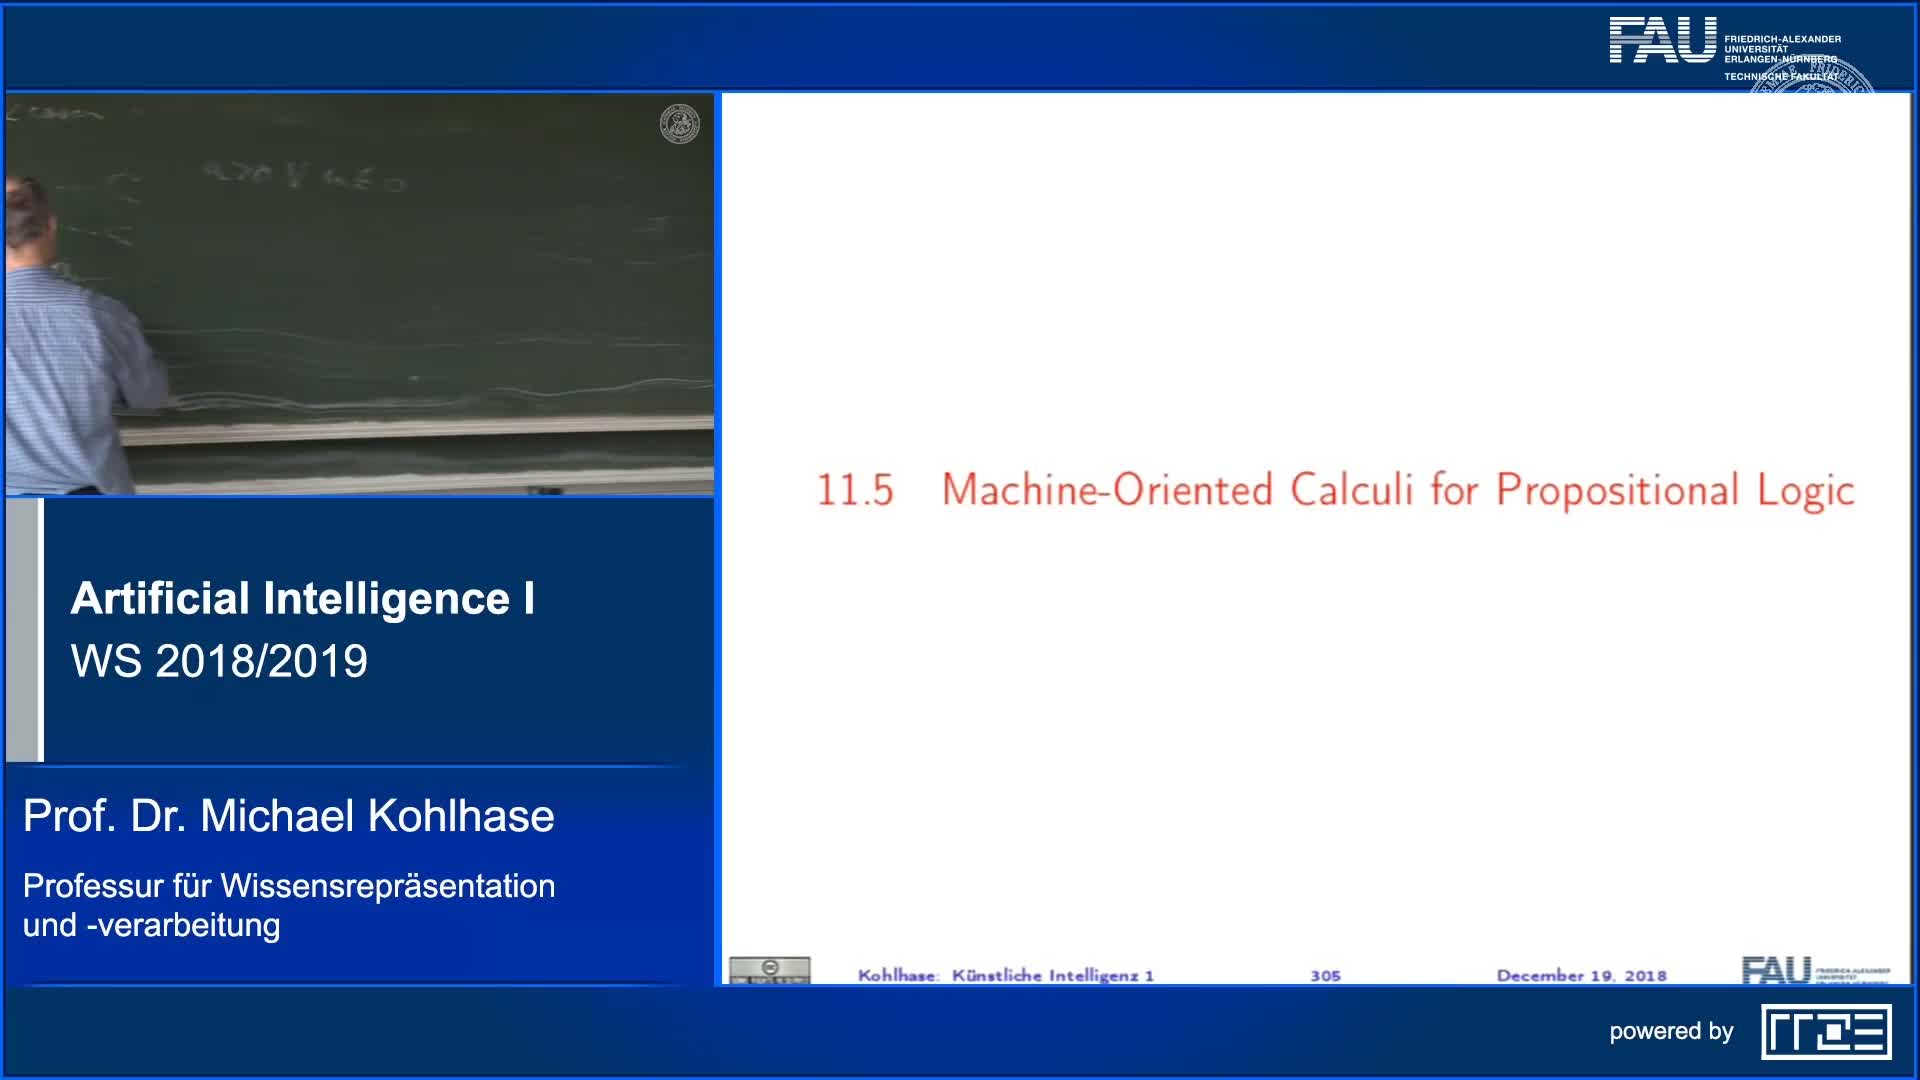 Machine-Oriented Calculi for Propositional Logic preview image